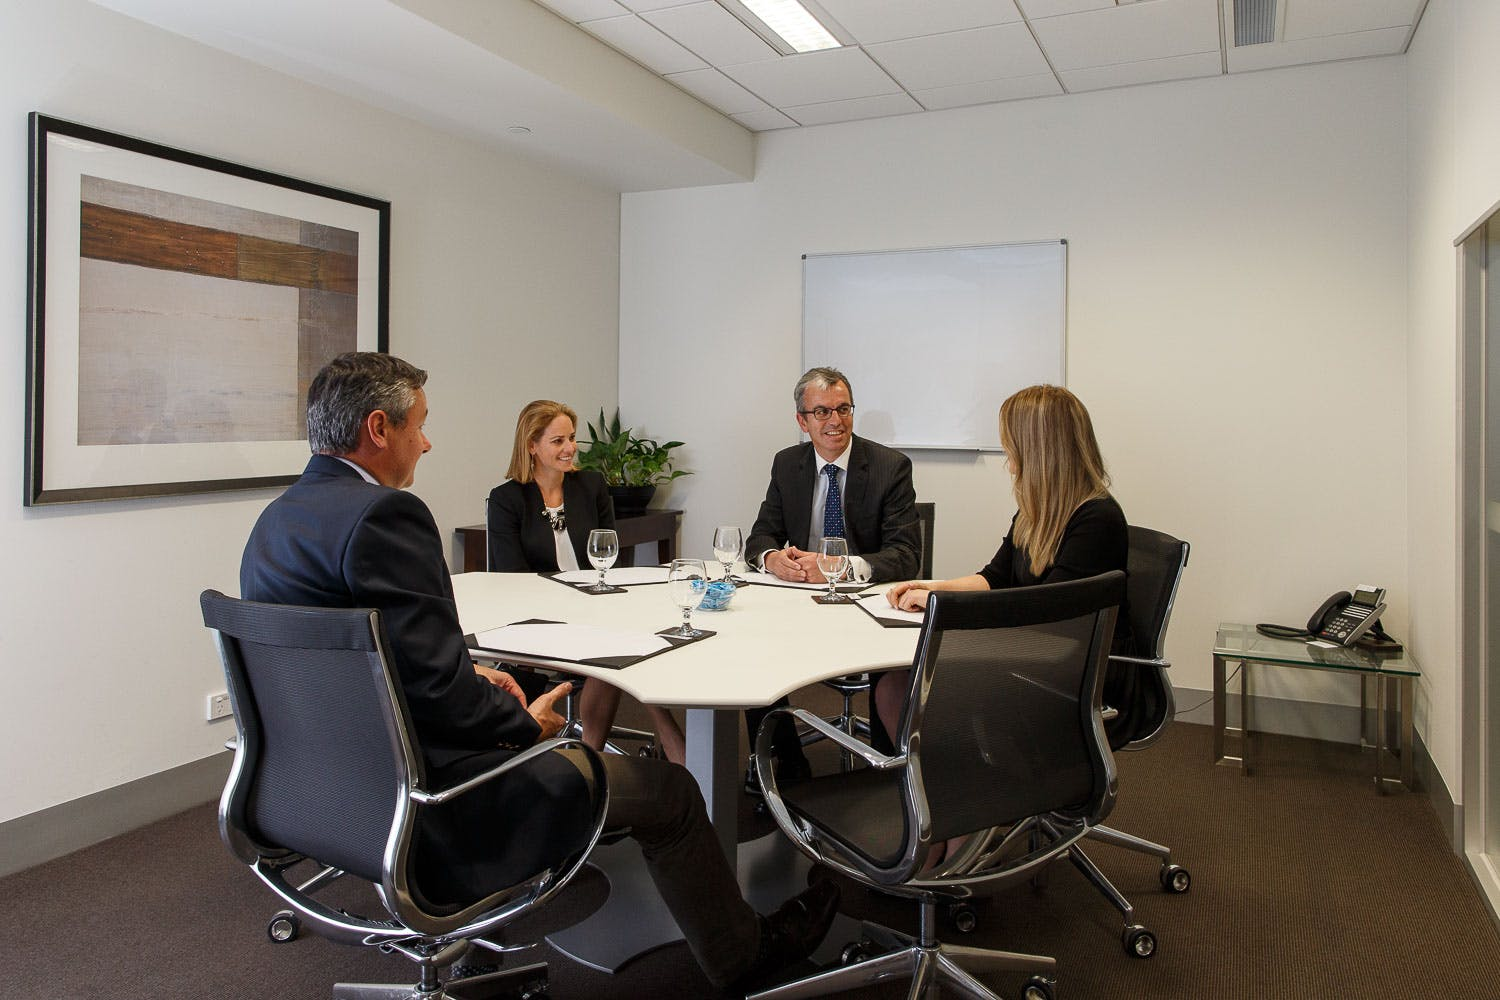 Small Meeting Room, meeting room at Scottish House Business Centre, image 1